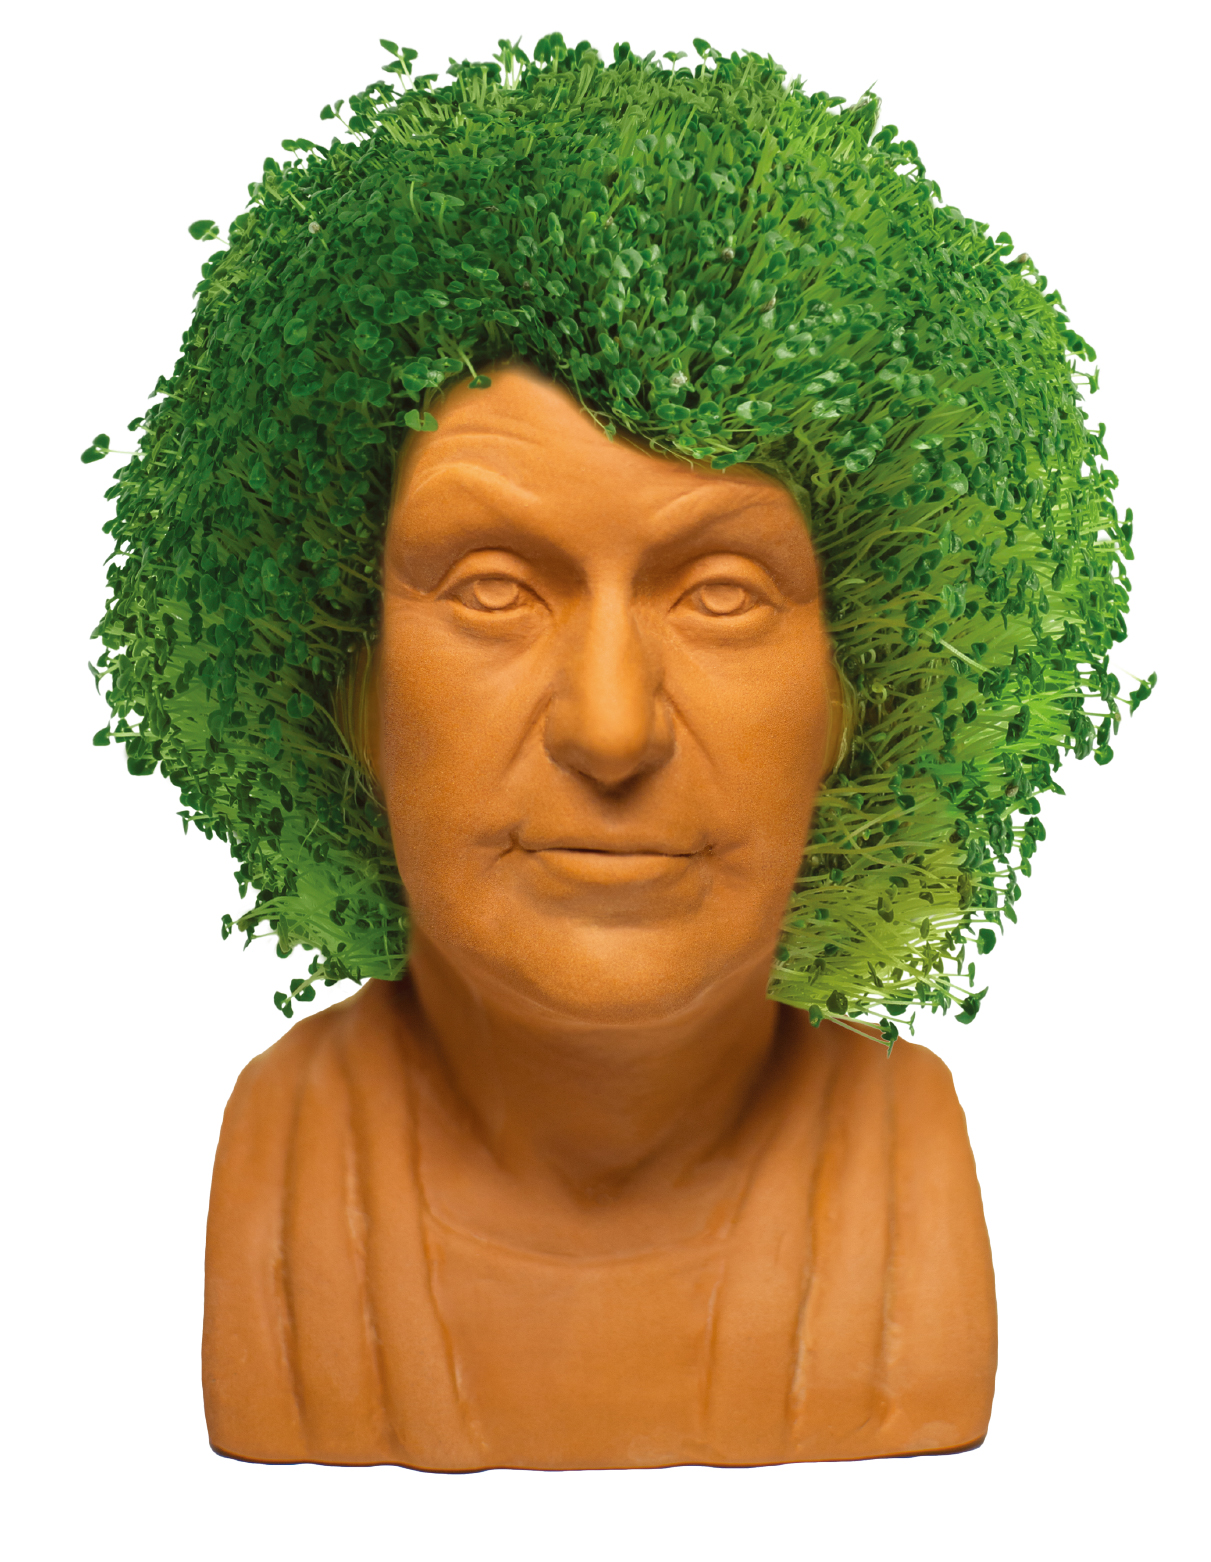 Chia Pet Images : images, Dorothy, Golden, Girls,, Arthur, Decorative, Pottery, Planter,, Grow,, Novelty, Walmart.com